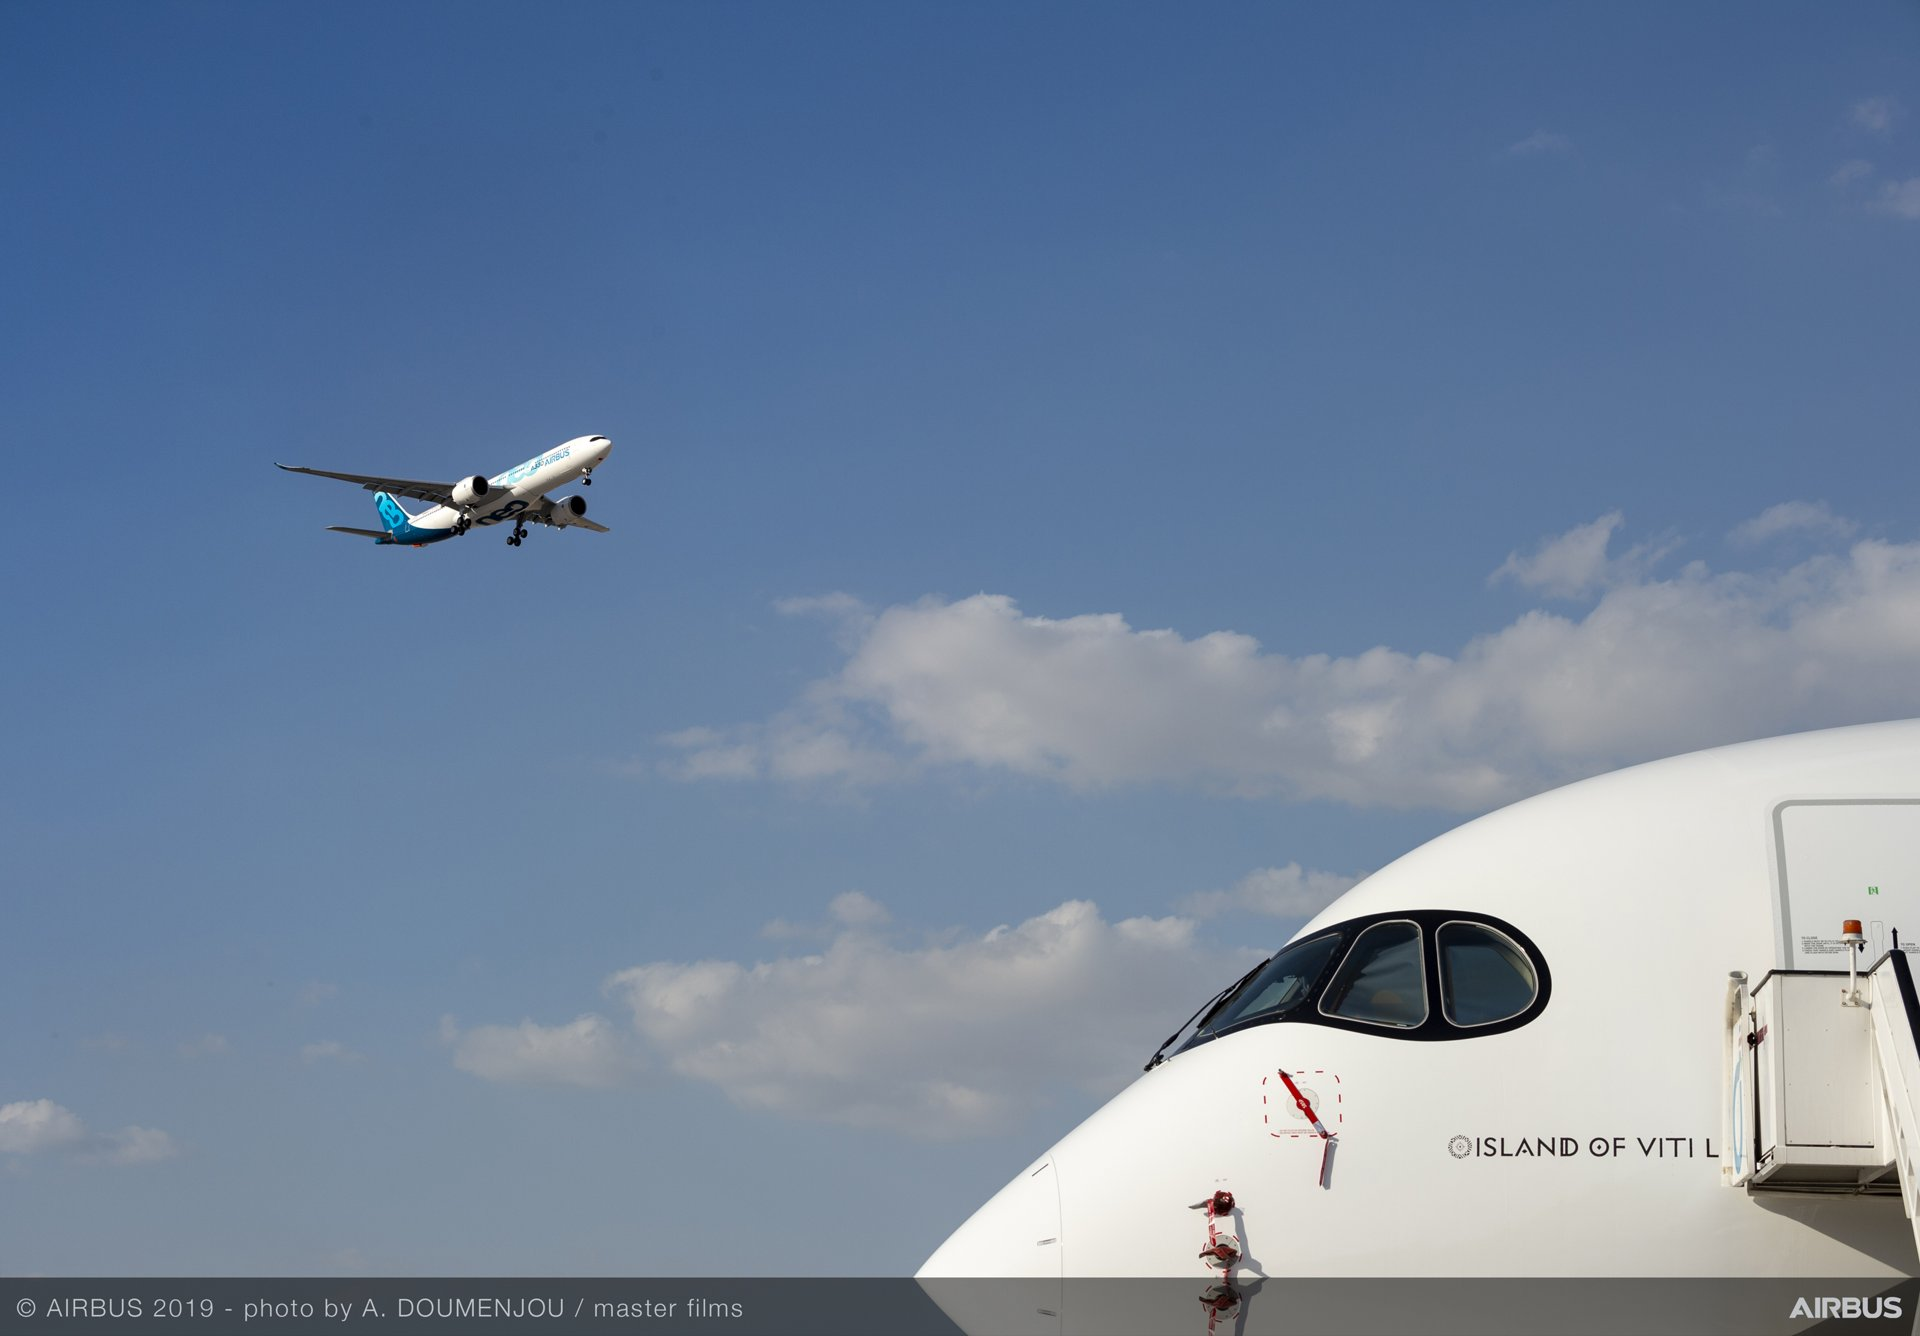 Airbus' A330neo test aircraft showcases its excellent handling qualities during a flight demonstration at the Dubai Airshow, being held 17-21 November 2019 in the United Arab Emirates; Fiji Airways' A350-900 is shown in the foreground